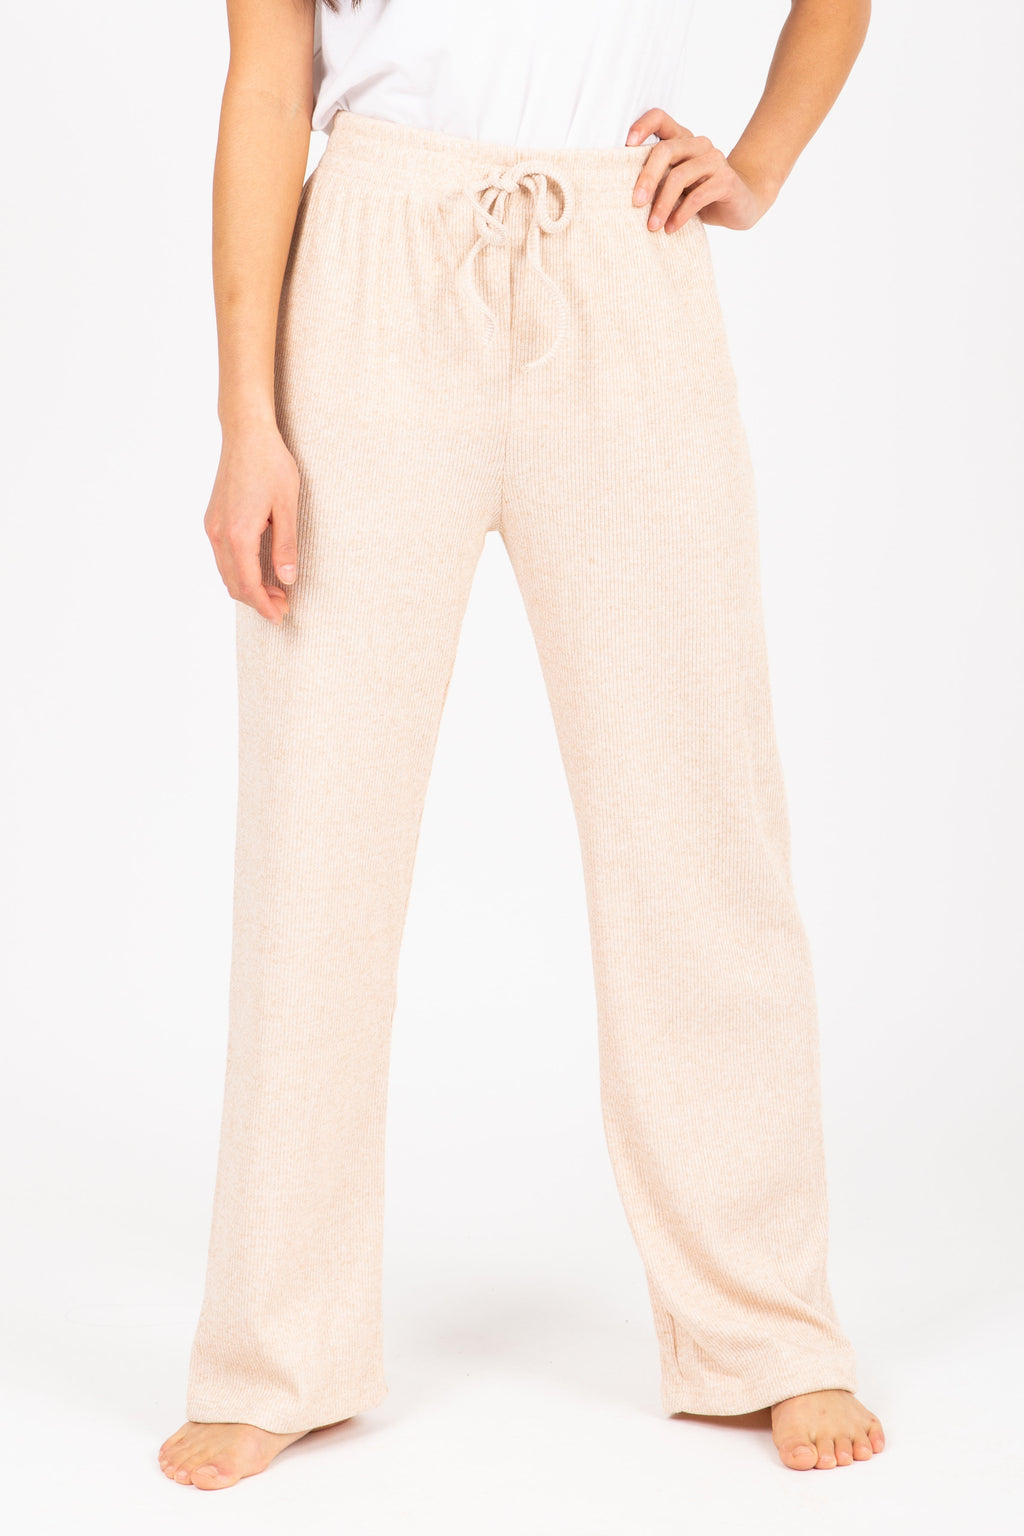 The Griffin Ribbed Trouser Pant in Taupe, studio shoot; front view